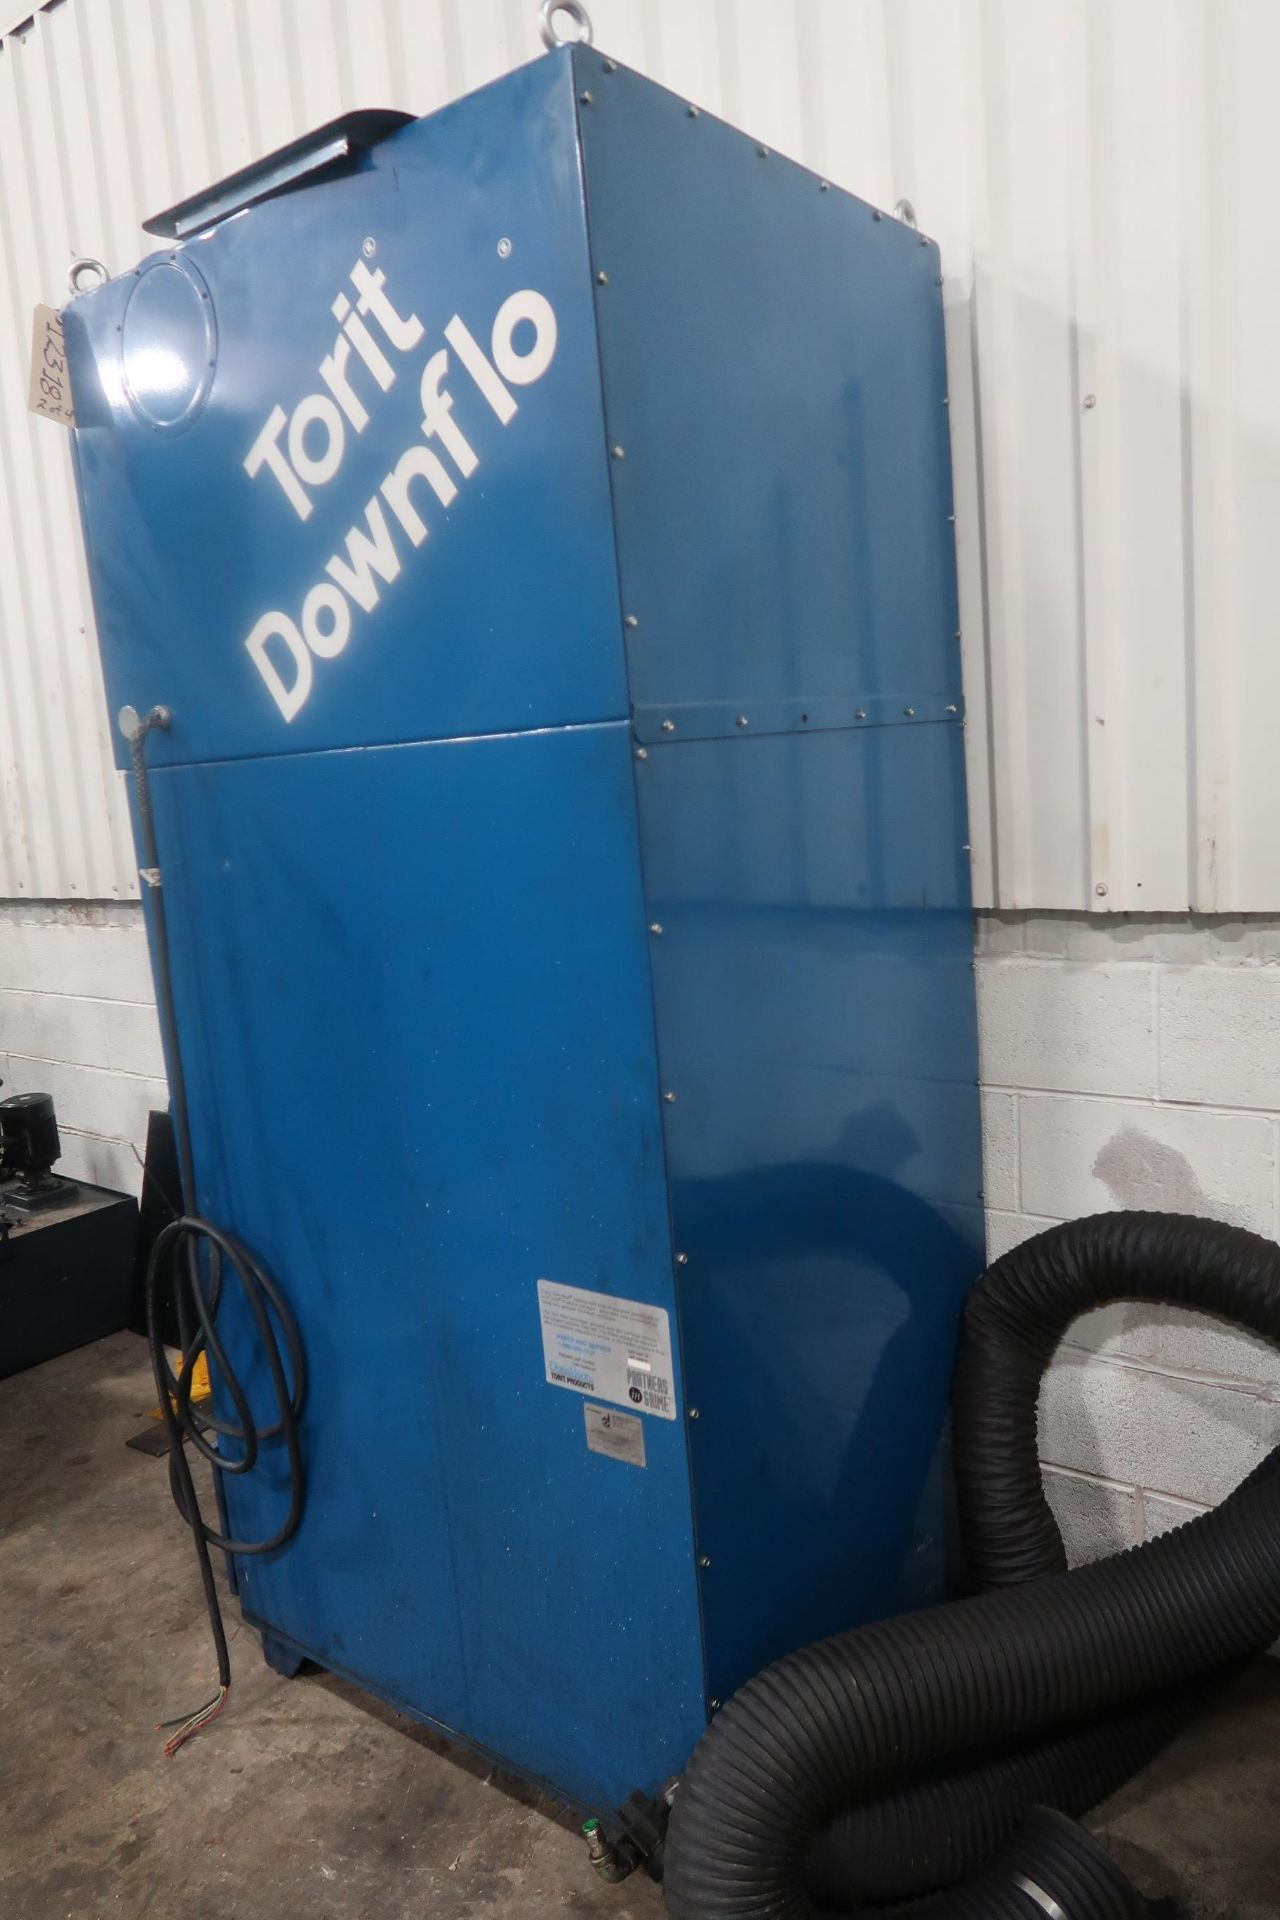 Lot 82 - Donaldson Torit SDF-6 Cartridge Dust Collector, S/N 1G500026-001, New 1999